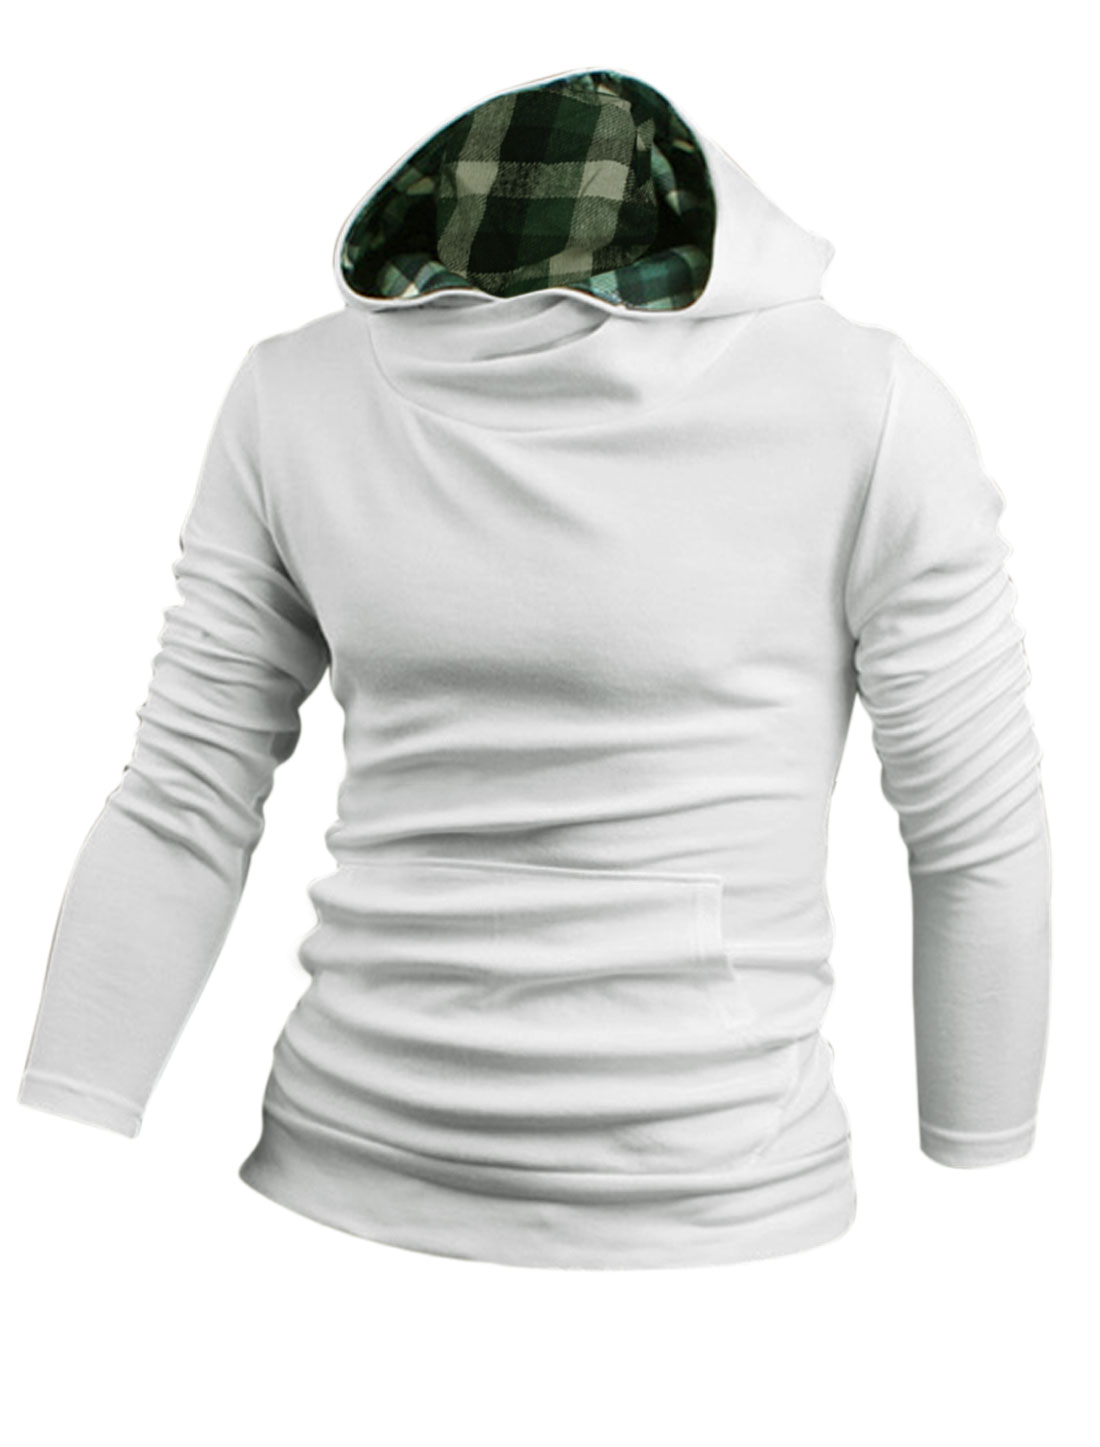 Men Hooded Long Sleeves Plaids Detail New Fashion Sweatshirt White M